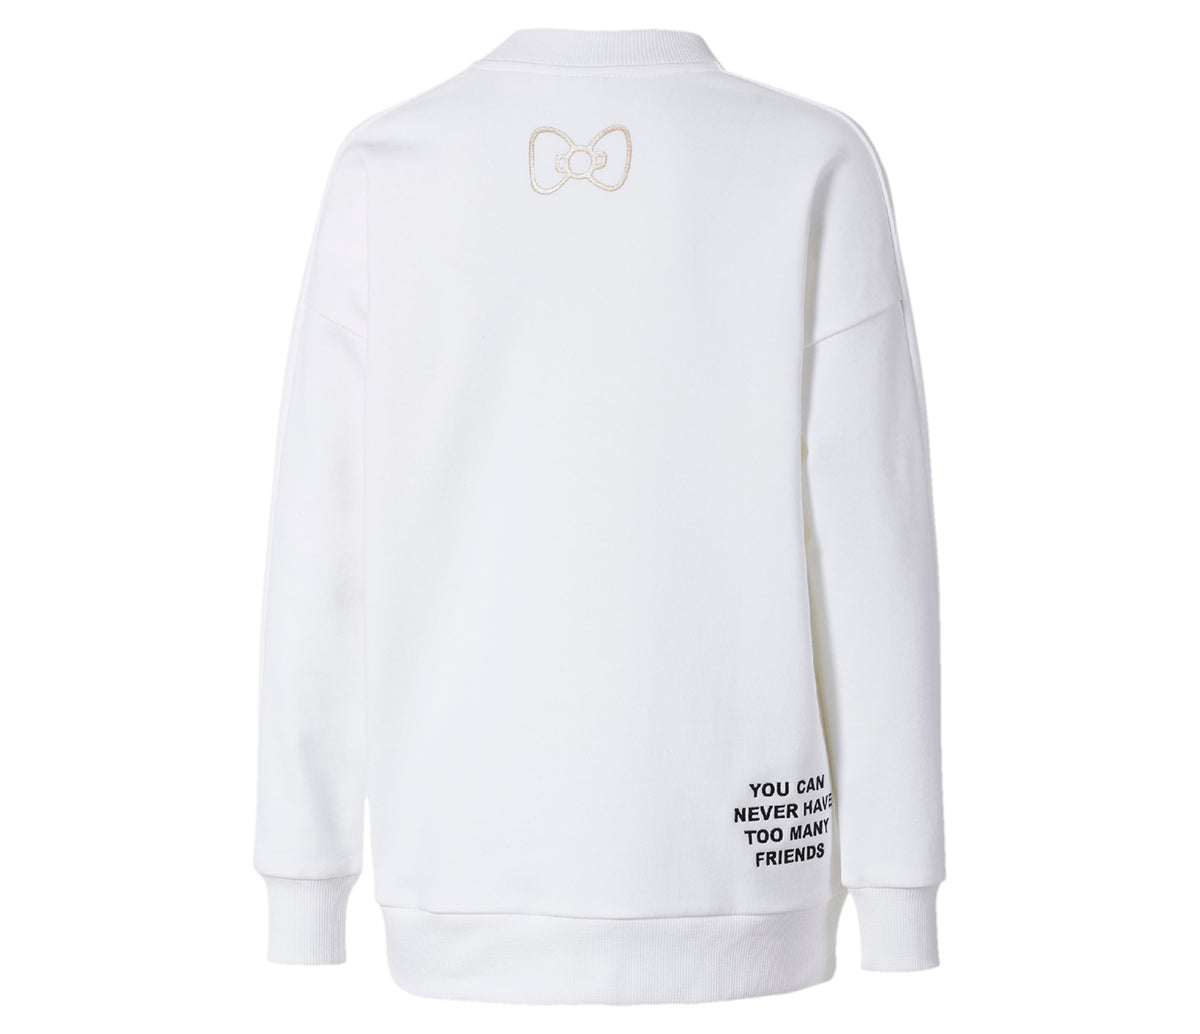 PUMA x Hello Kitty Crewneck: White